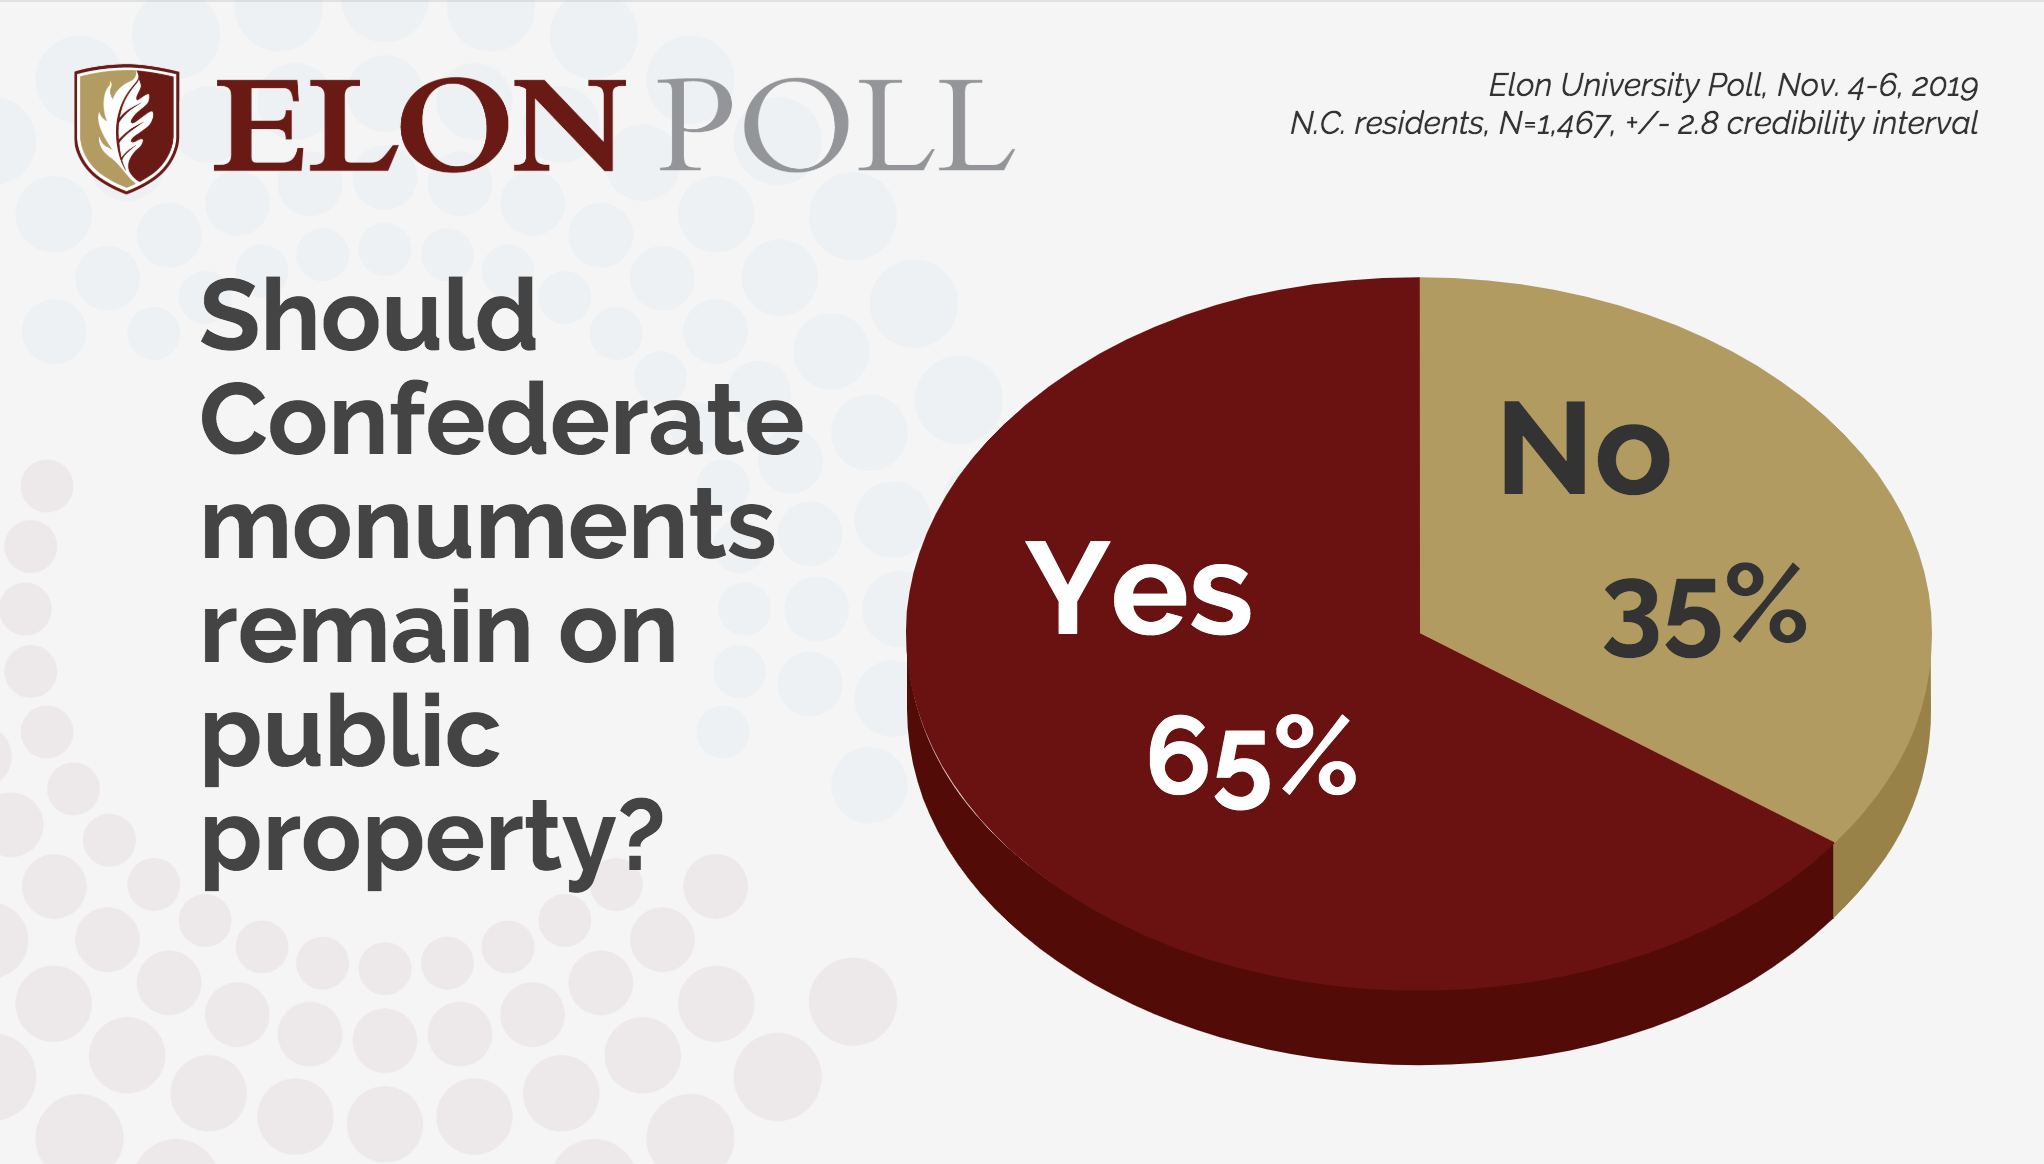 Elon Poll: Most North Carolinians favor keeping Confederate statues even as more come down